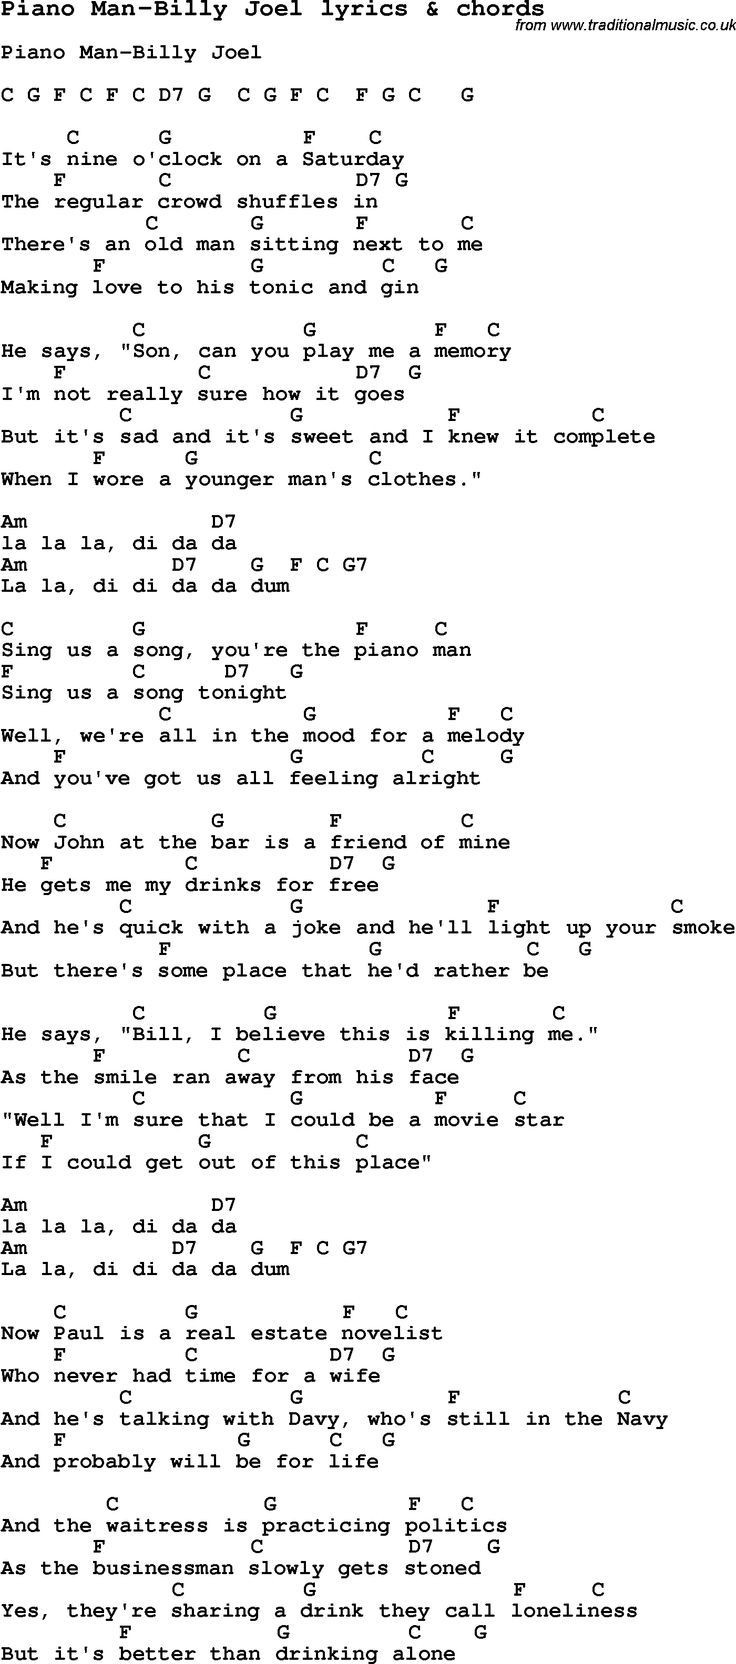 George Strait Christmas Cookies Lyrics  Love Song Lyrics for Piano Man Billy Joel with chords for